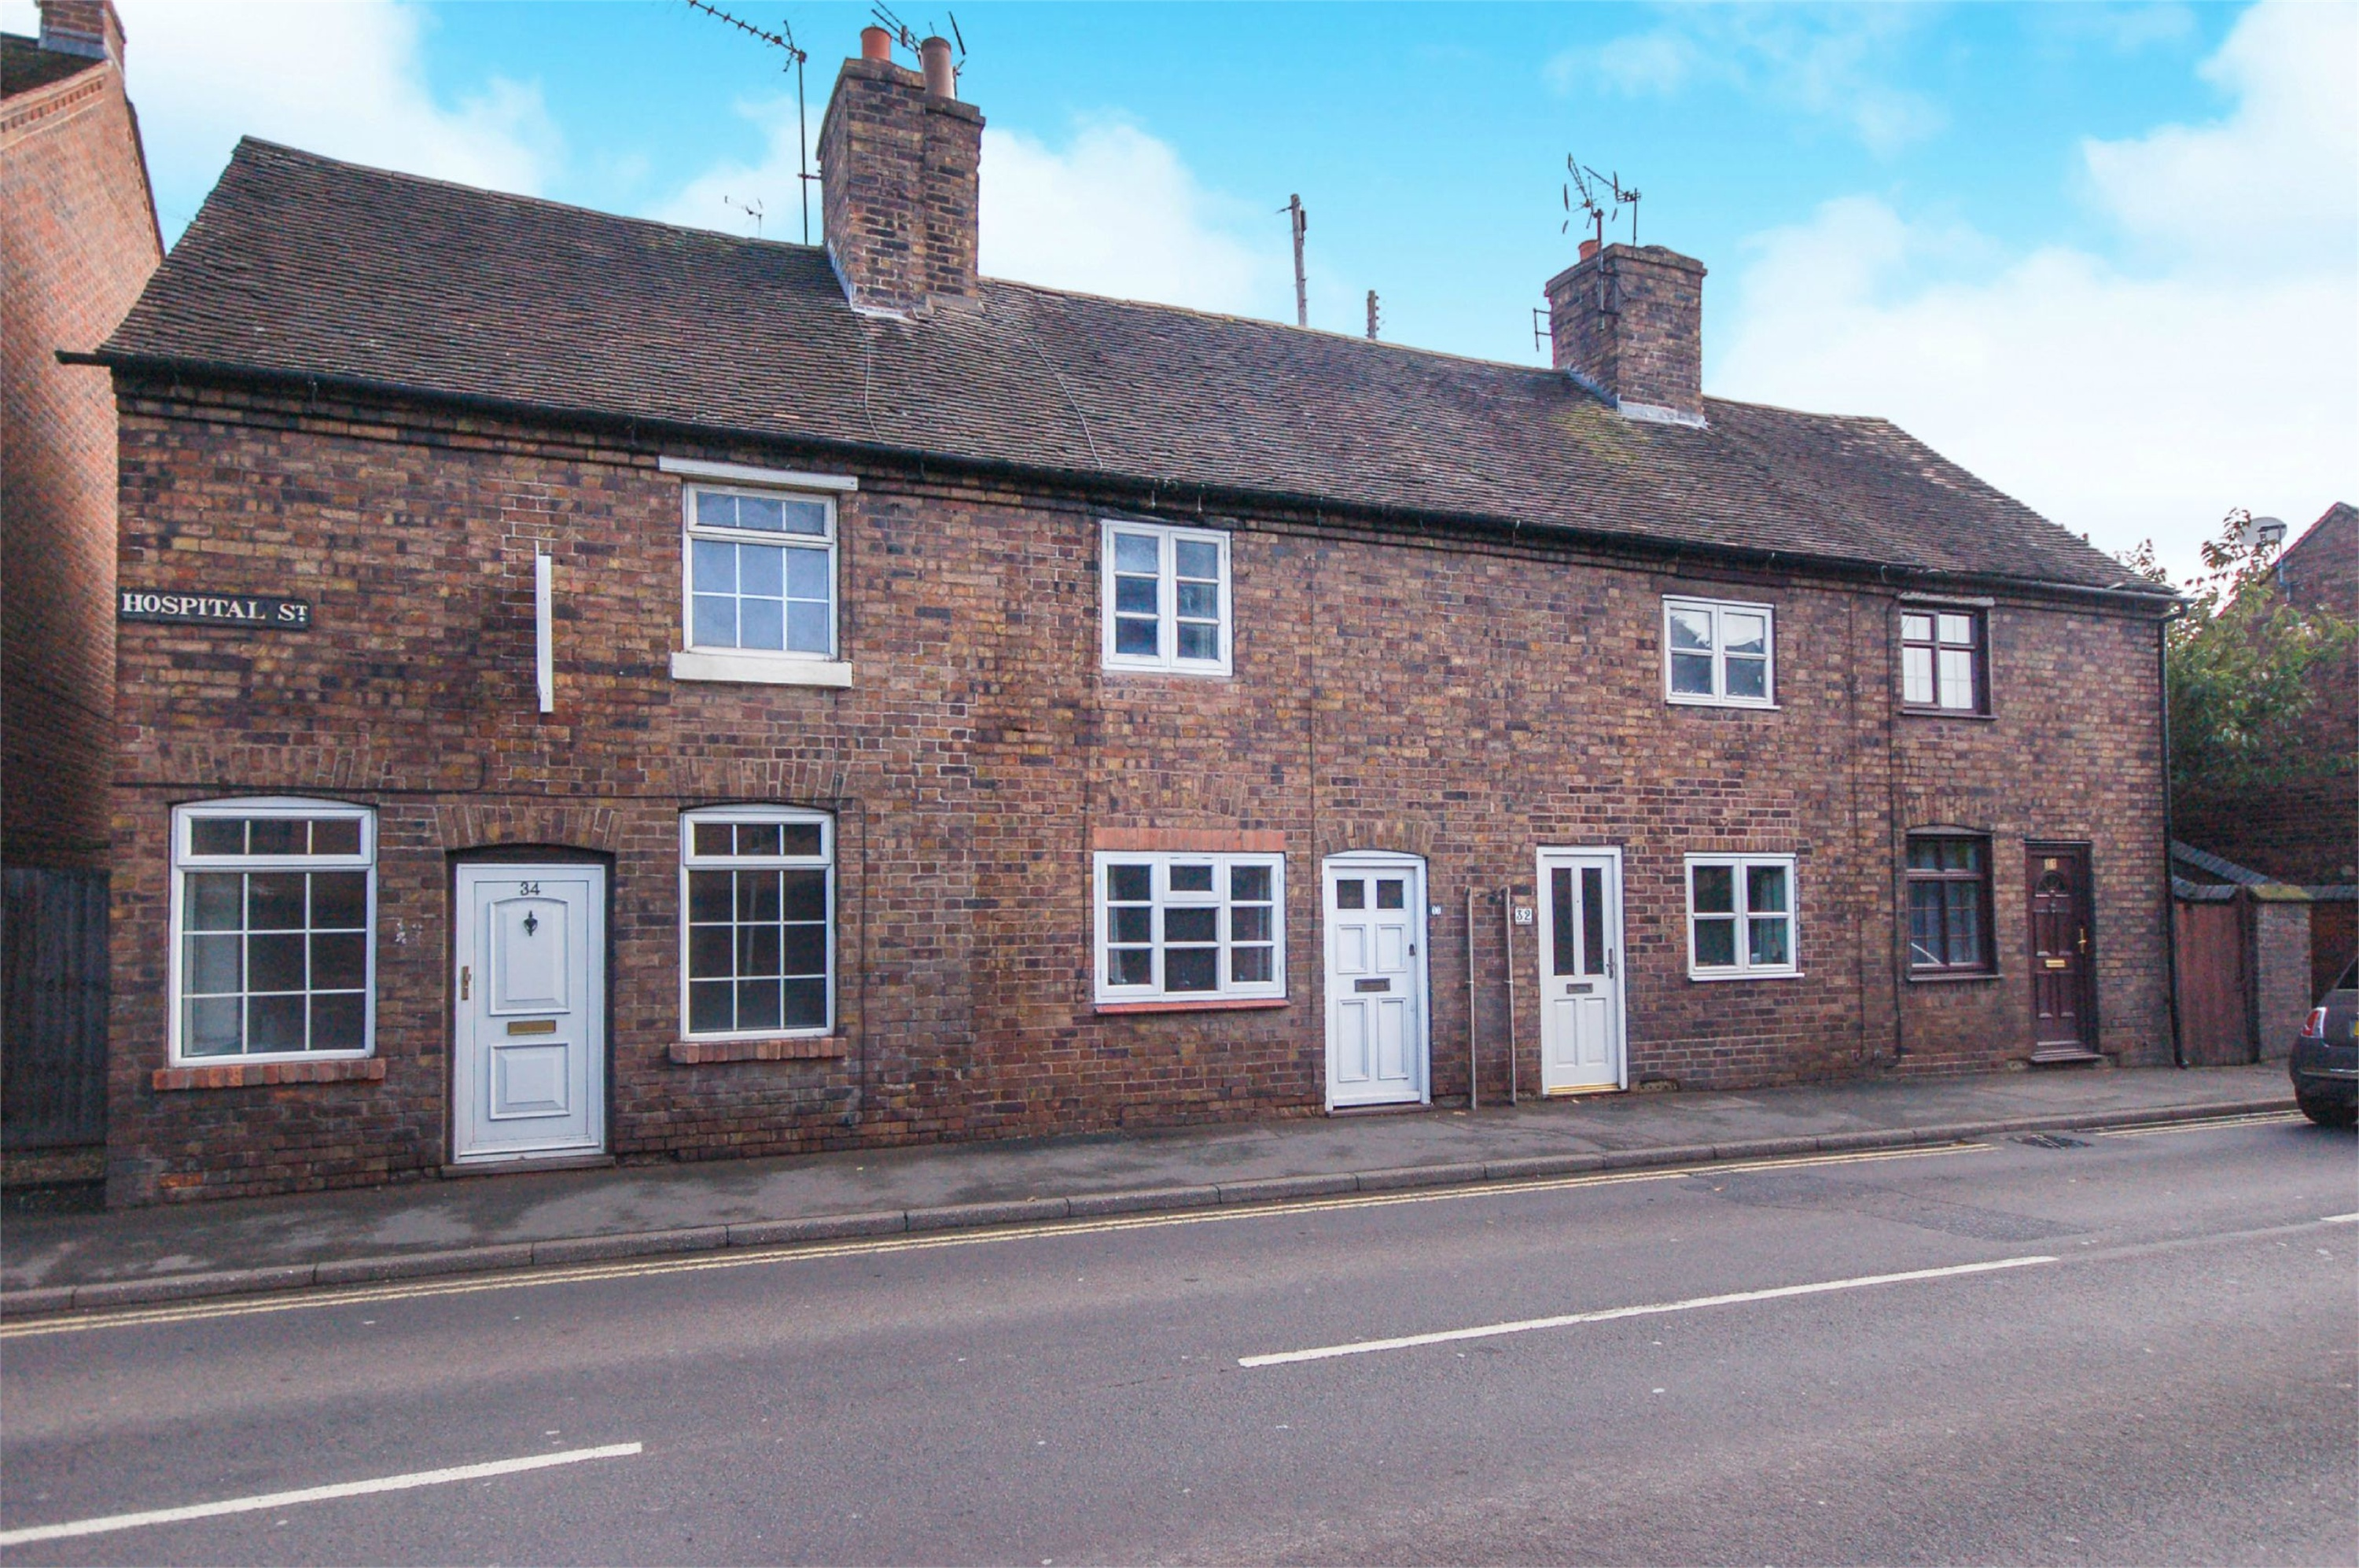 2 Bedrooms Terraced House for sale in 33 Hospital Street, Bridgnorth, Shropshire, WV15